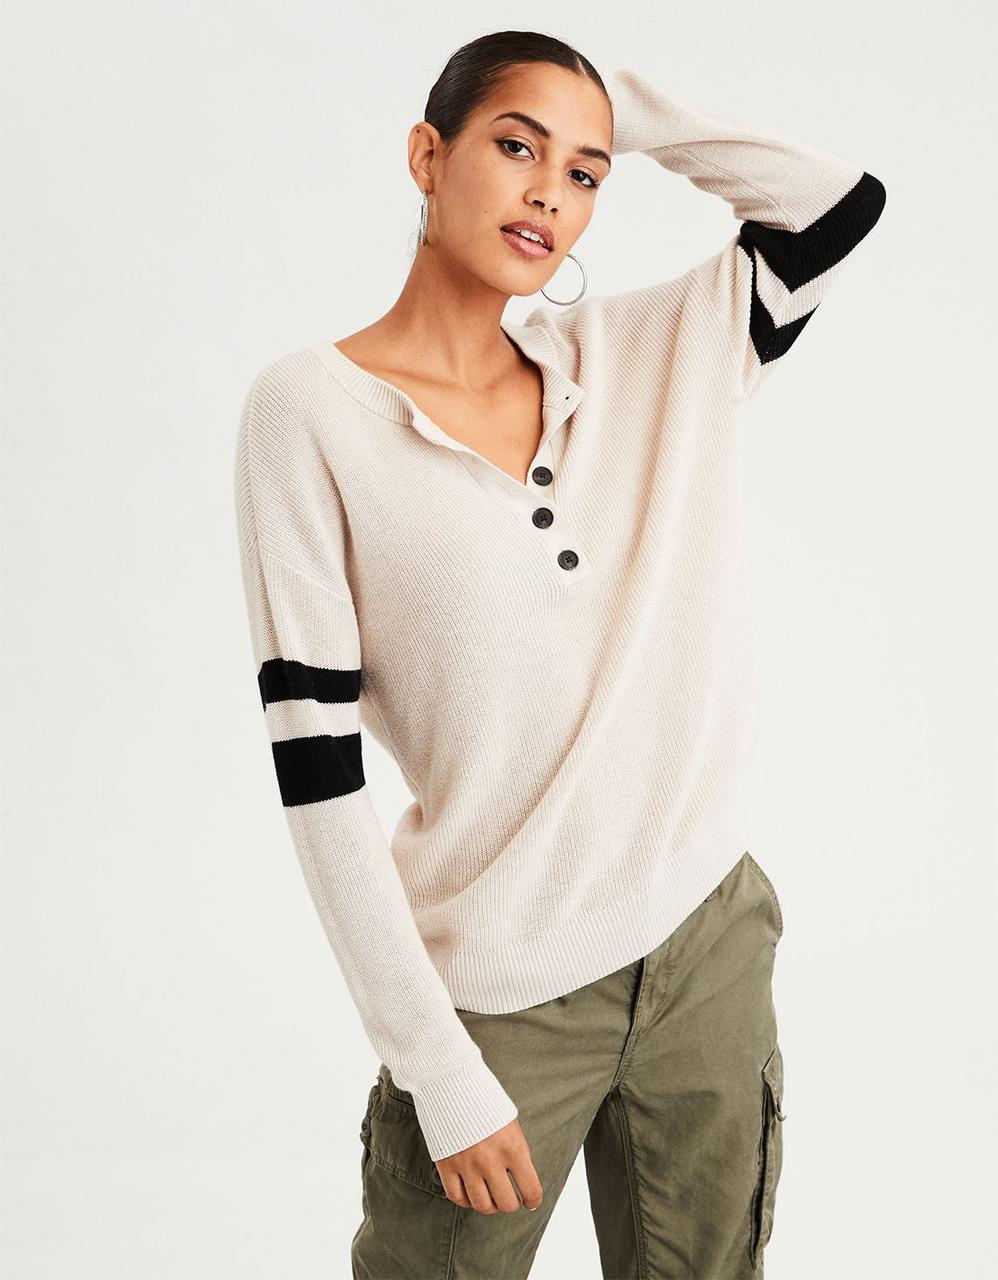 532c228a7f65 American Eagle Sweaters, AE VARSITY STRIPE HENLEY PULLOVER SWEATER ...